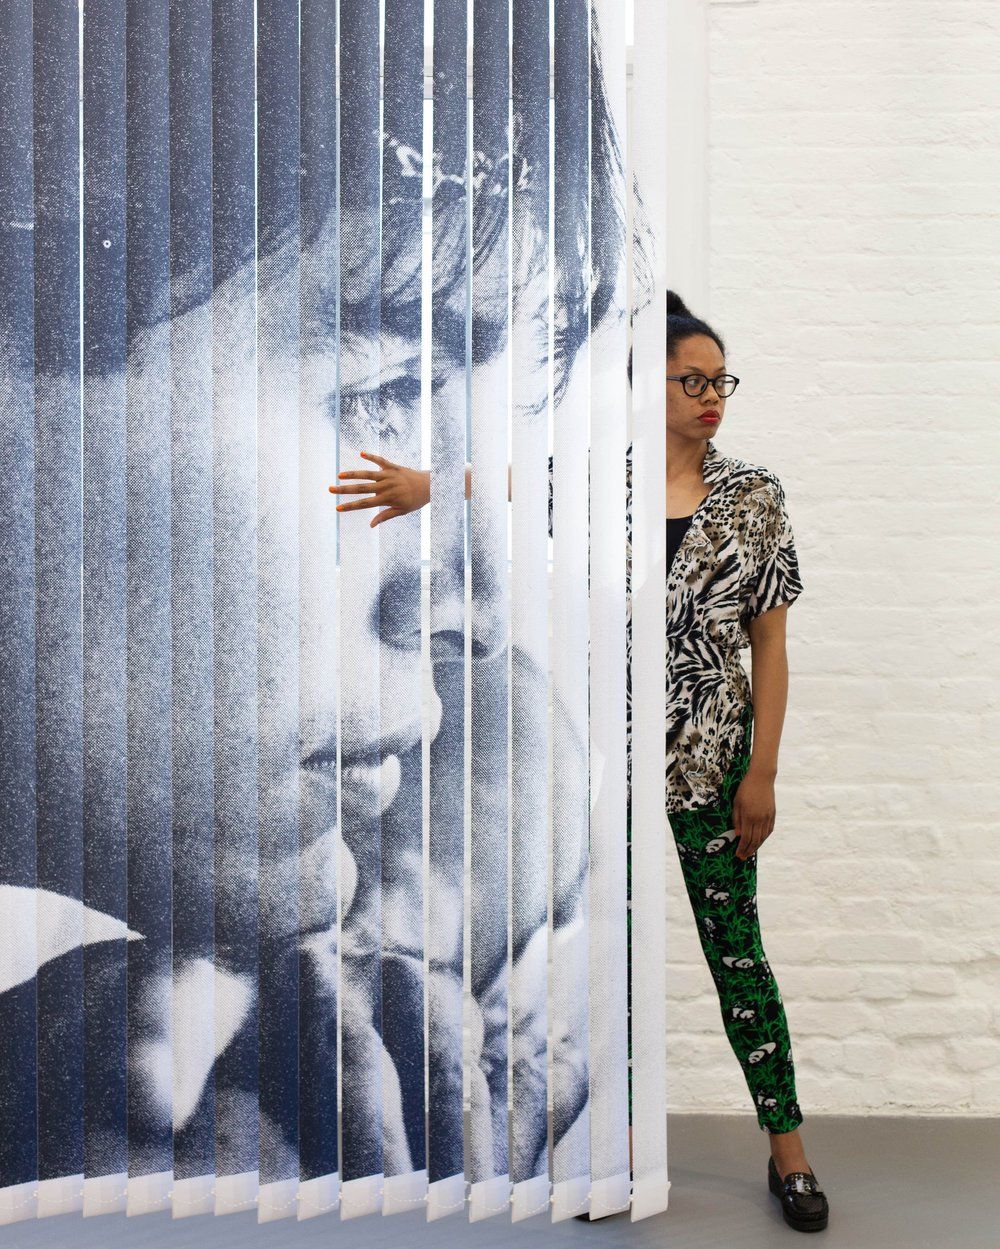 Anthea Hamilton —Shortlist Turner Prize